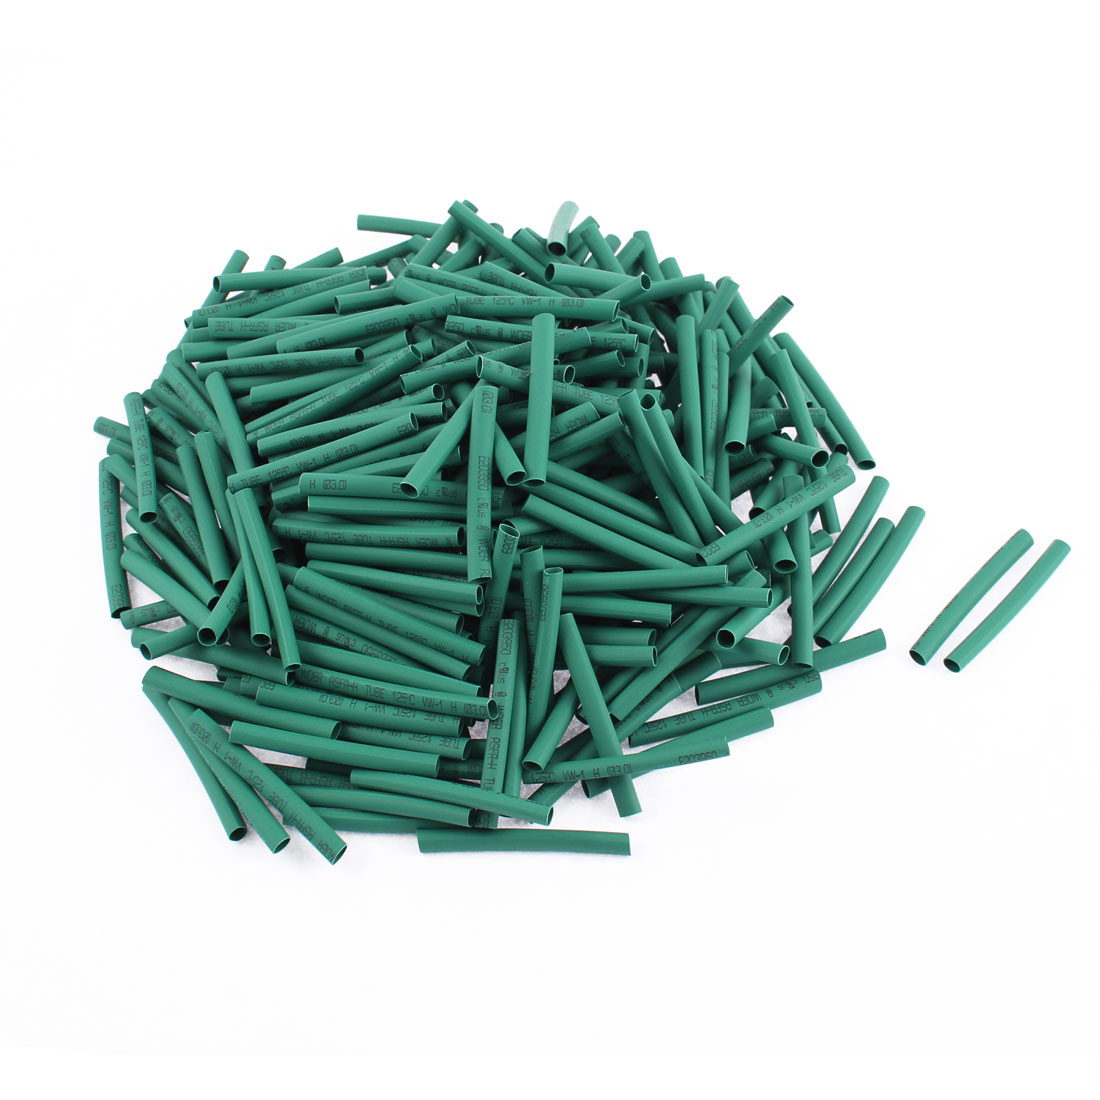 Electrical Connection Cable Sleeve 40mm Length Heat Shrink Tubing Green 350Pcs